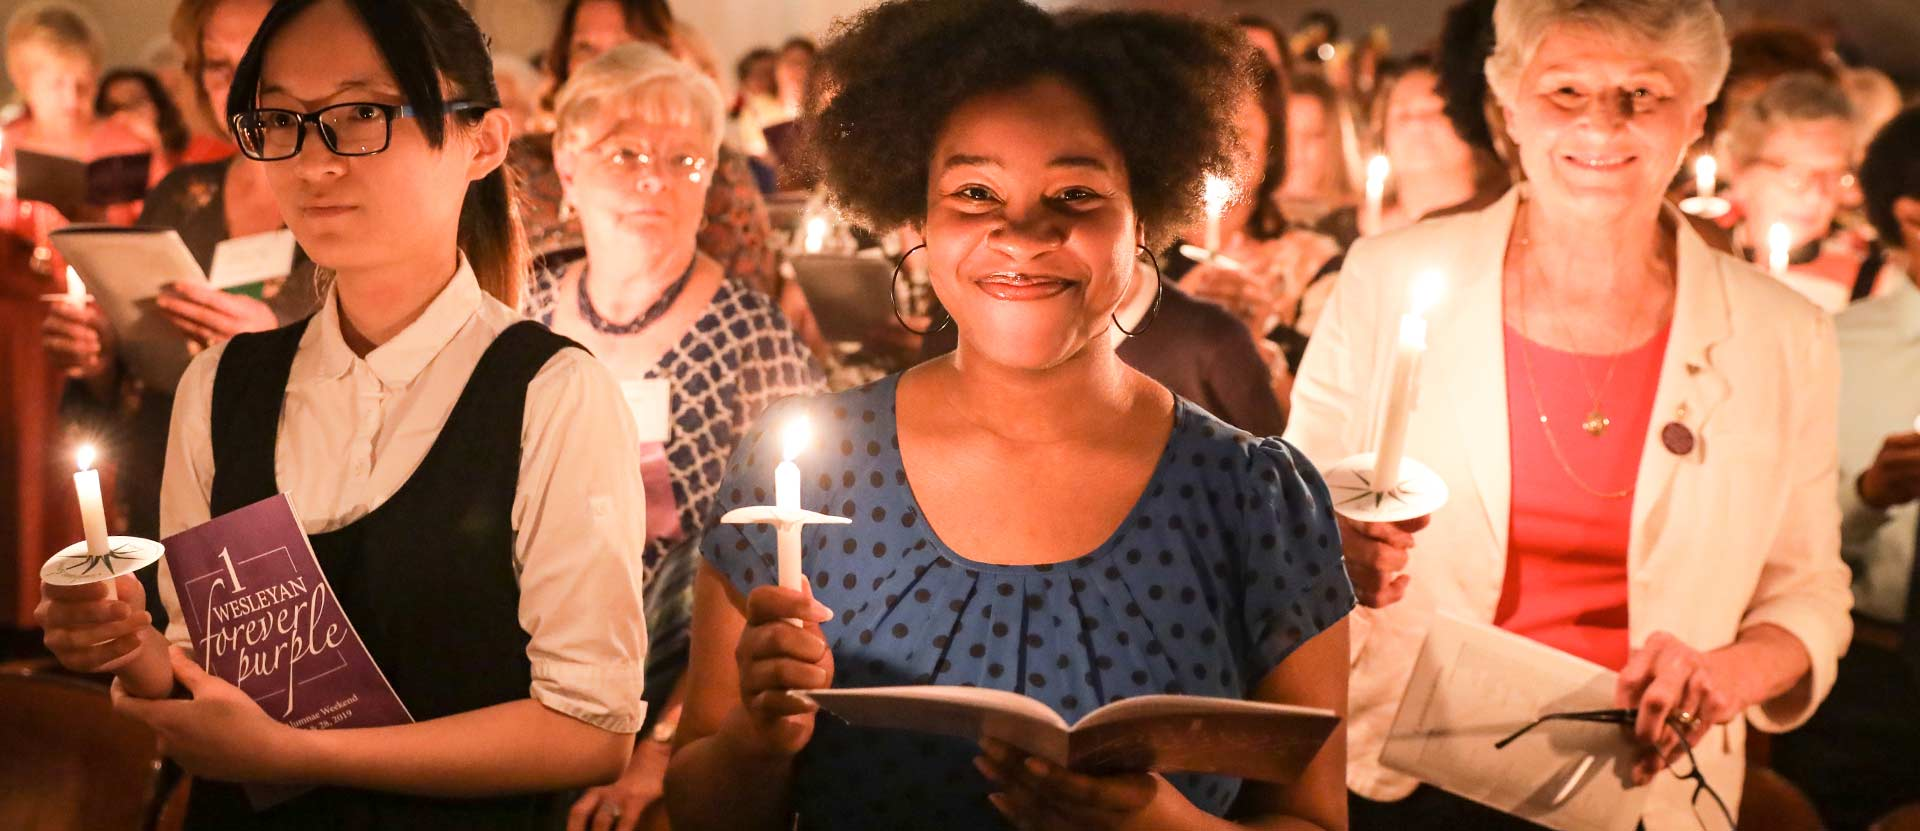 Alumnae smile at the camera holding candles.